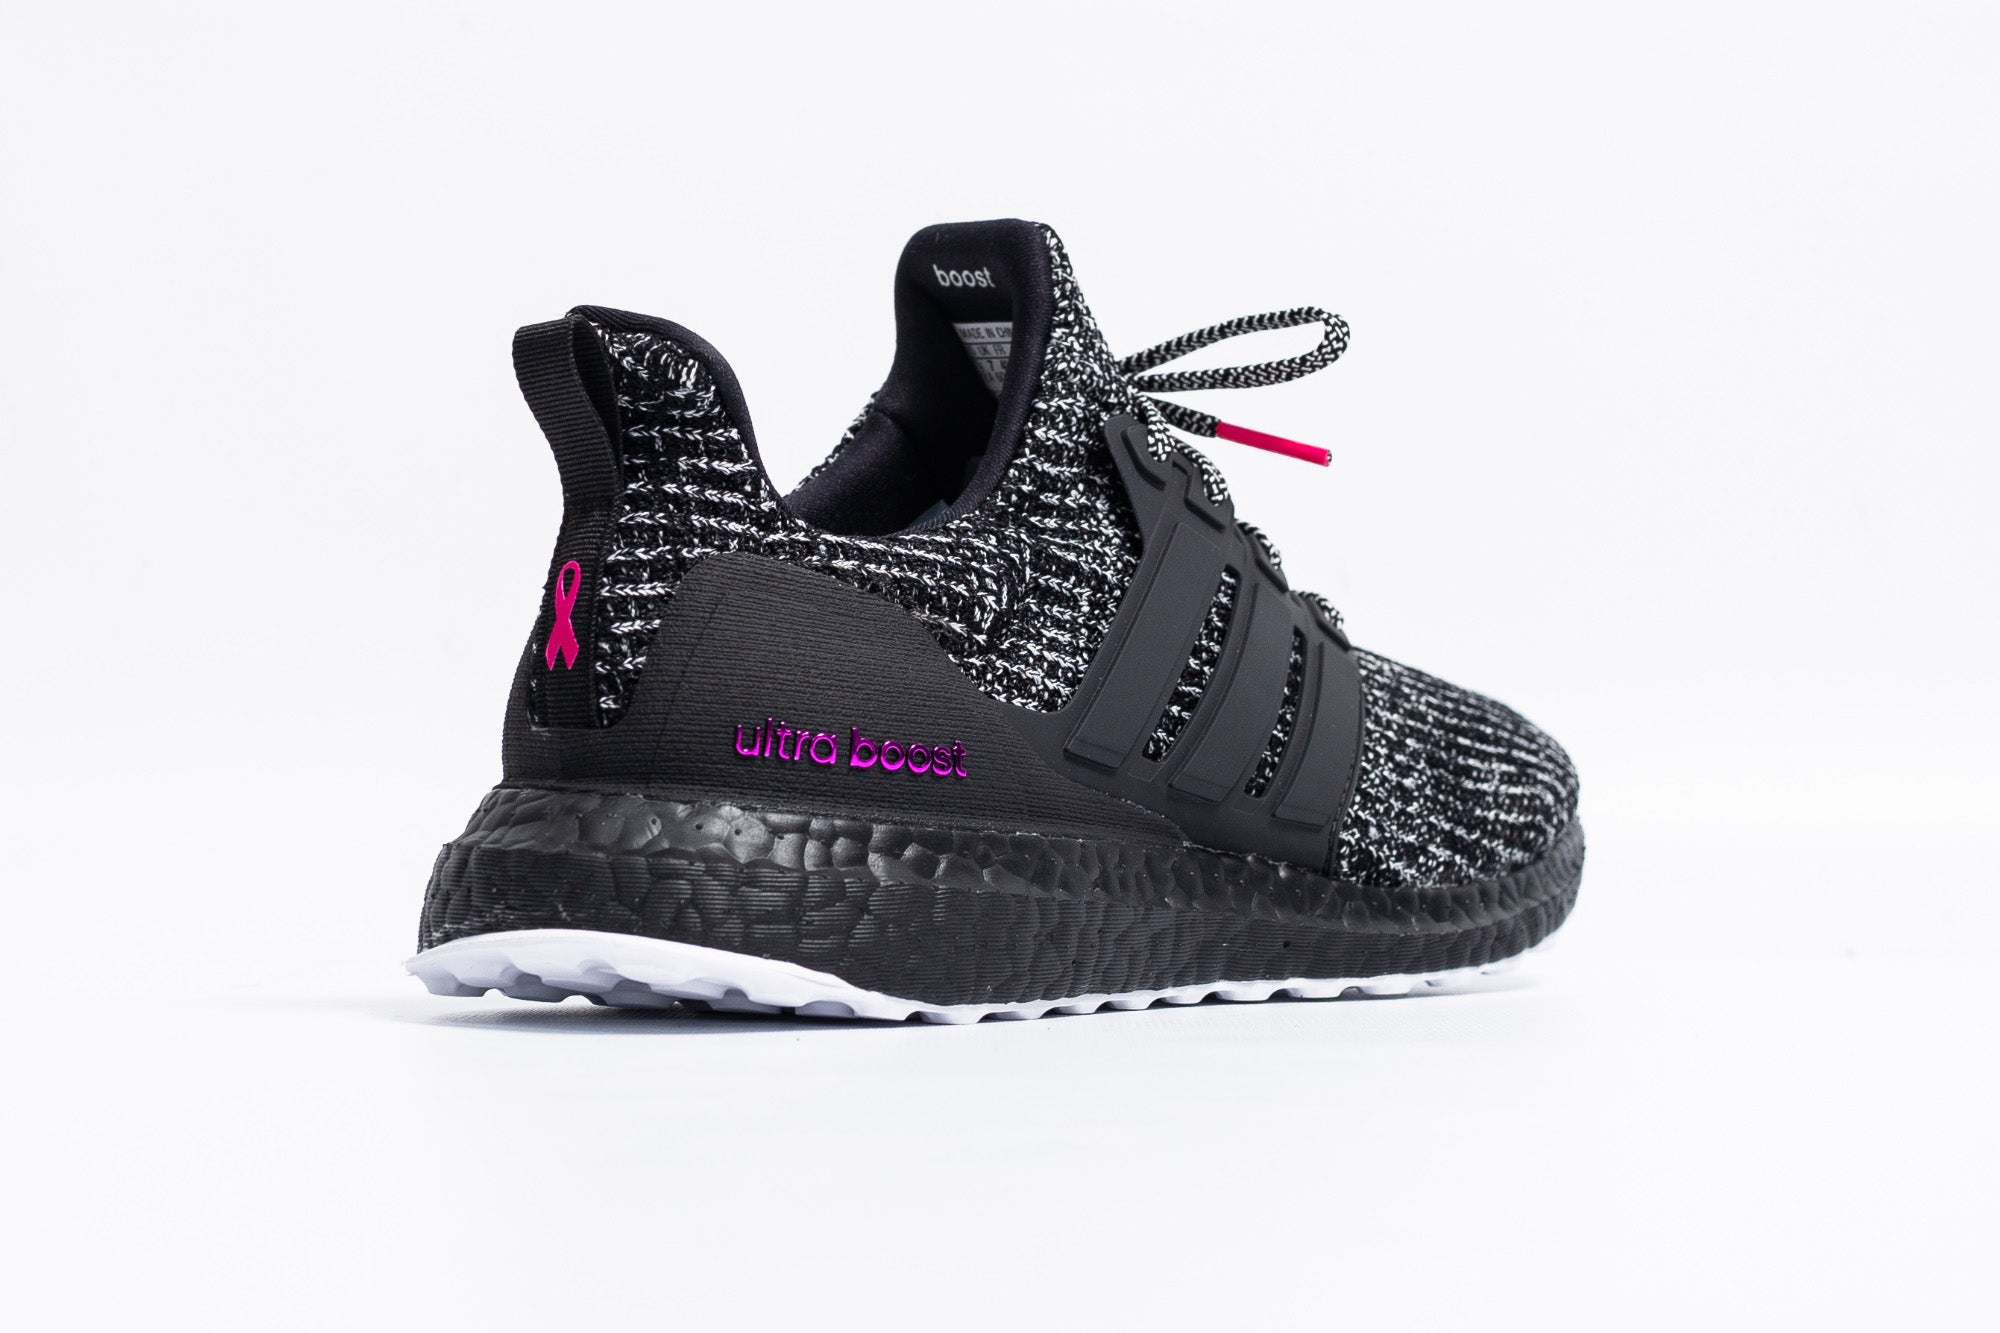 e089cd87dfb4f ADIDAS ULTRA BOOST CANCER AWARENESS – PACKER SHOES